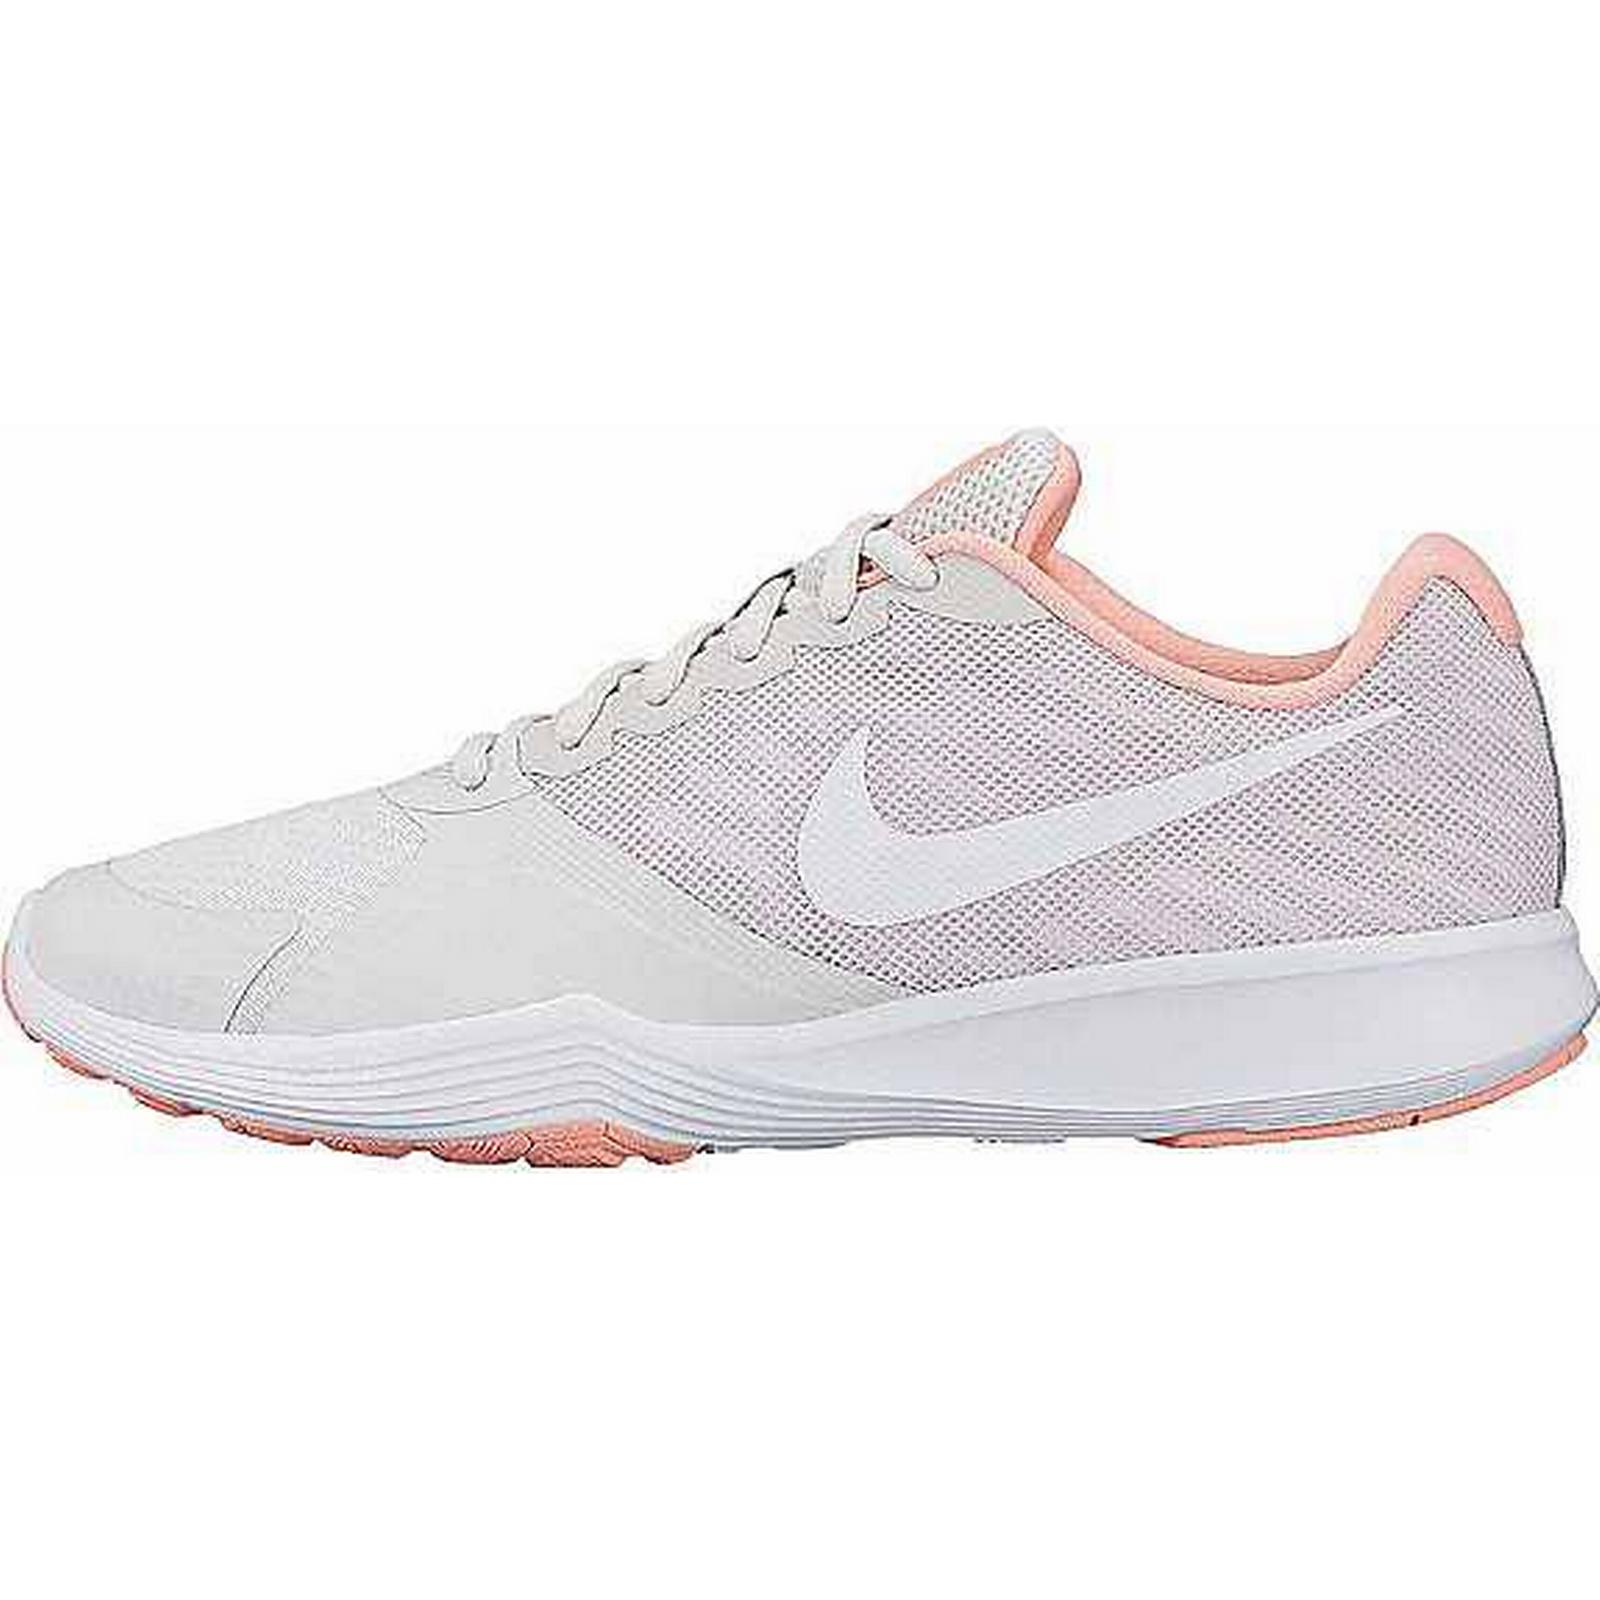 Nike Fitness City Trainer Fitness Nike Shoes 6945c0